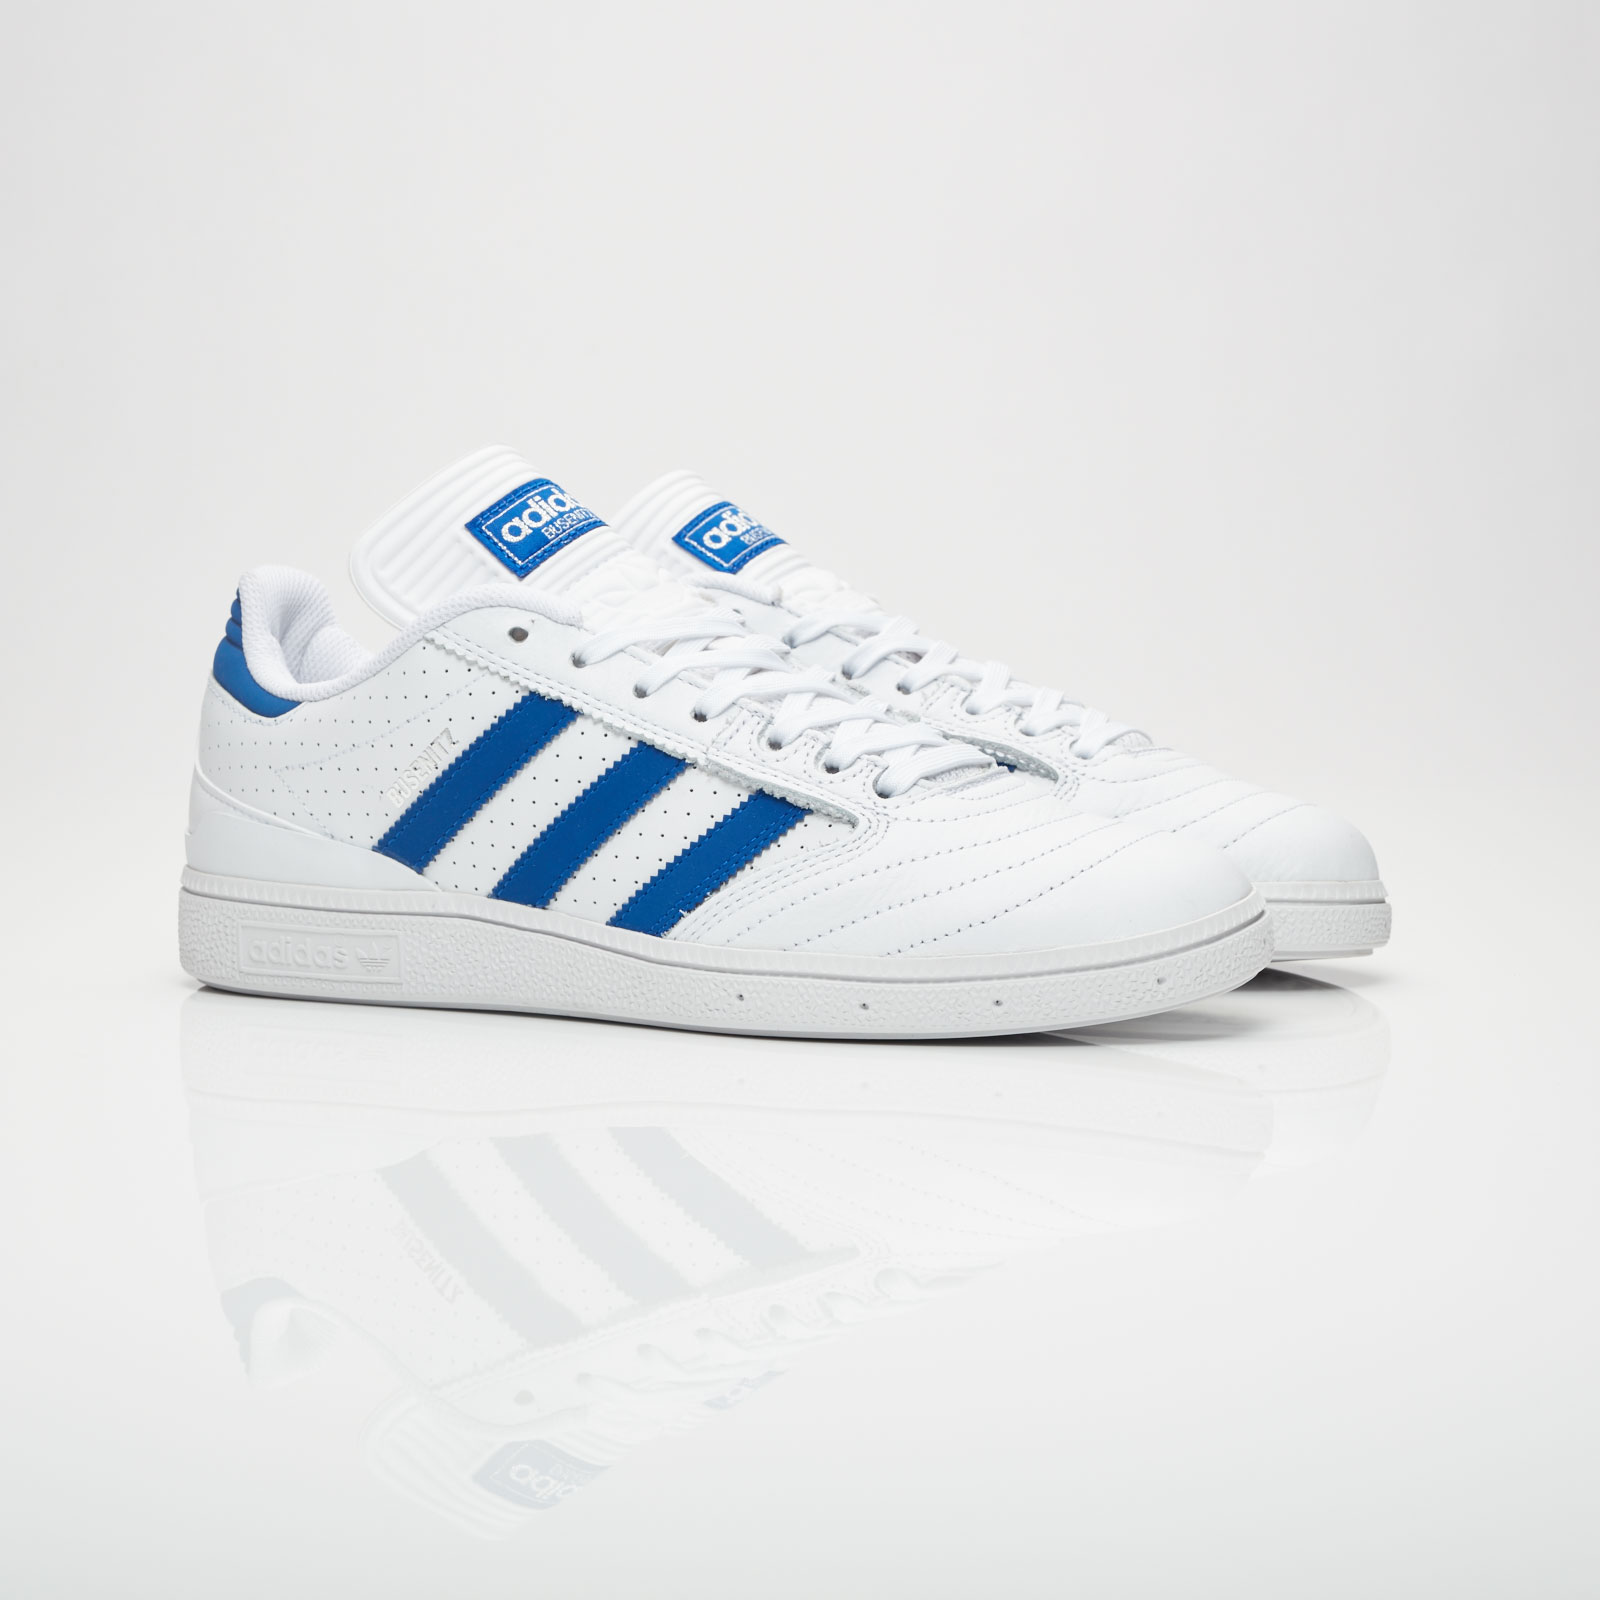 adidas Busenitz - BY3971 - Size 8 - hhAS8vNiaN